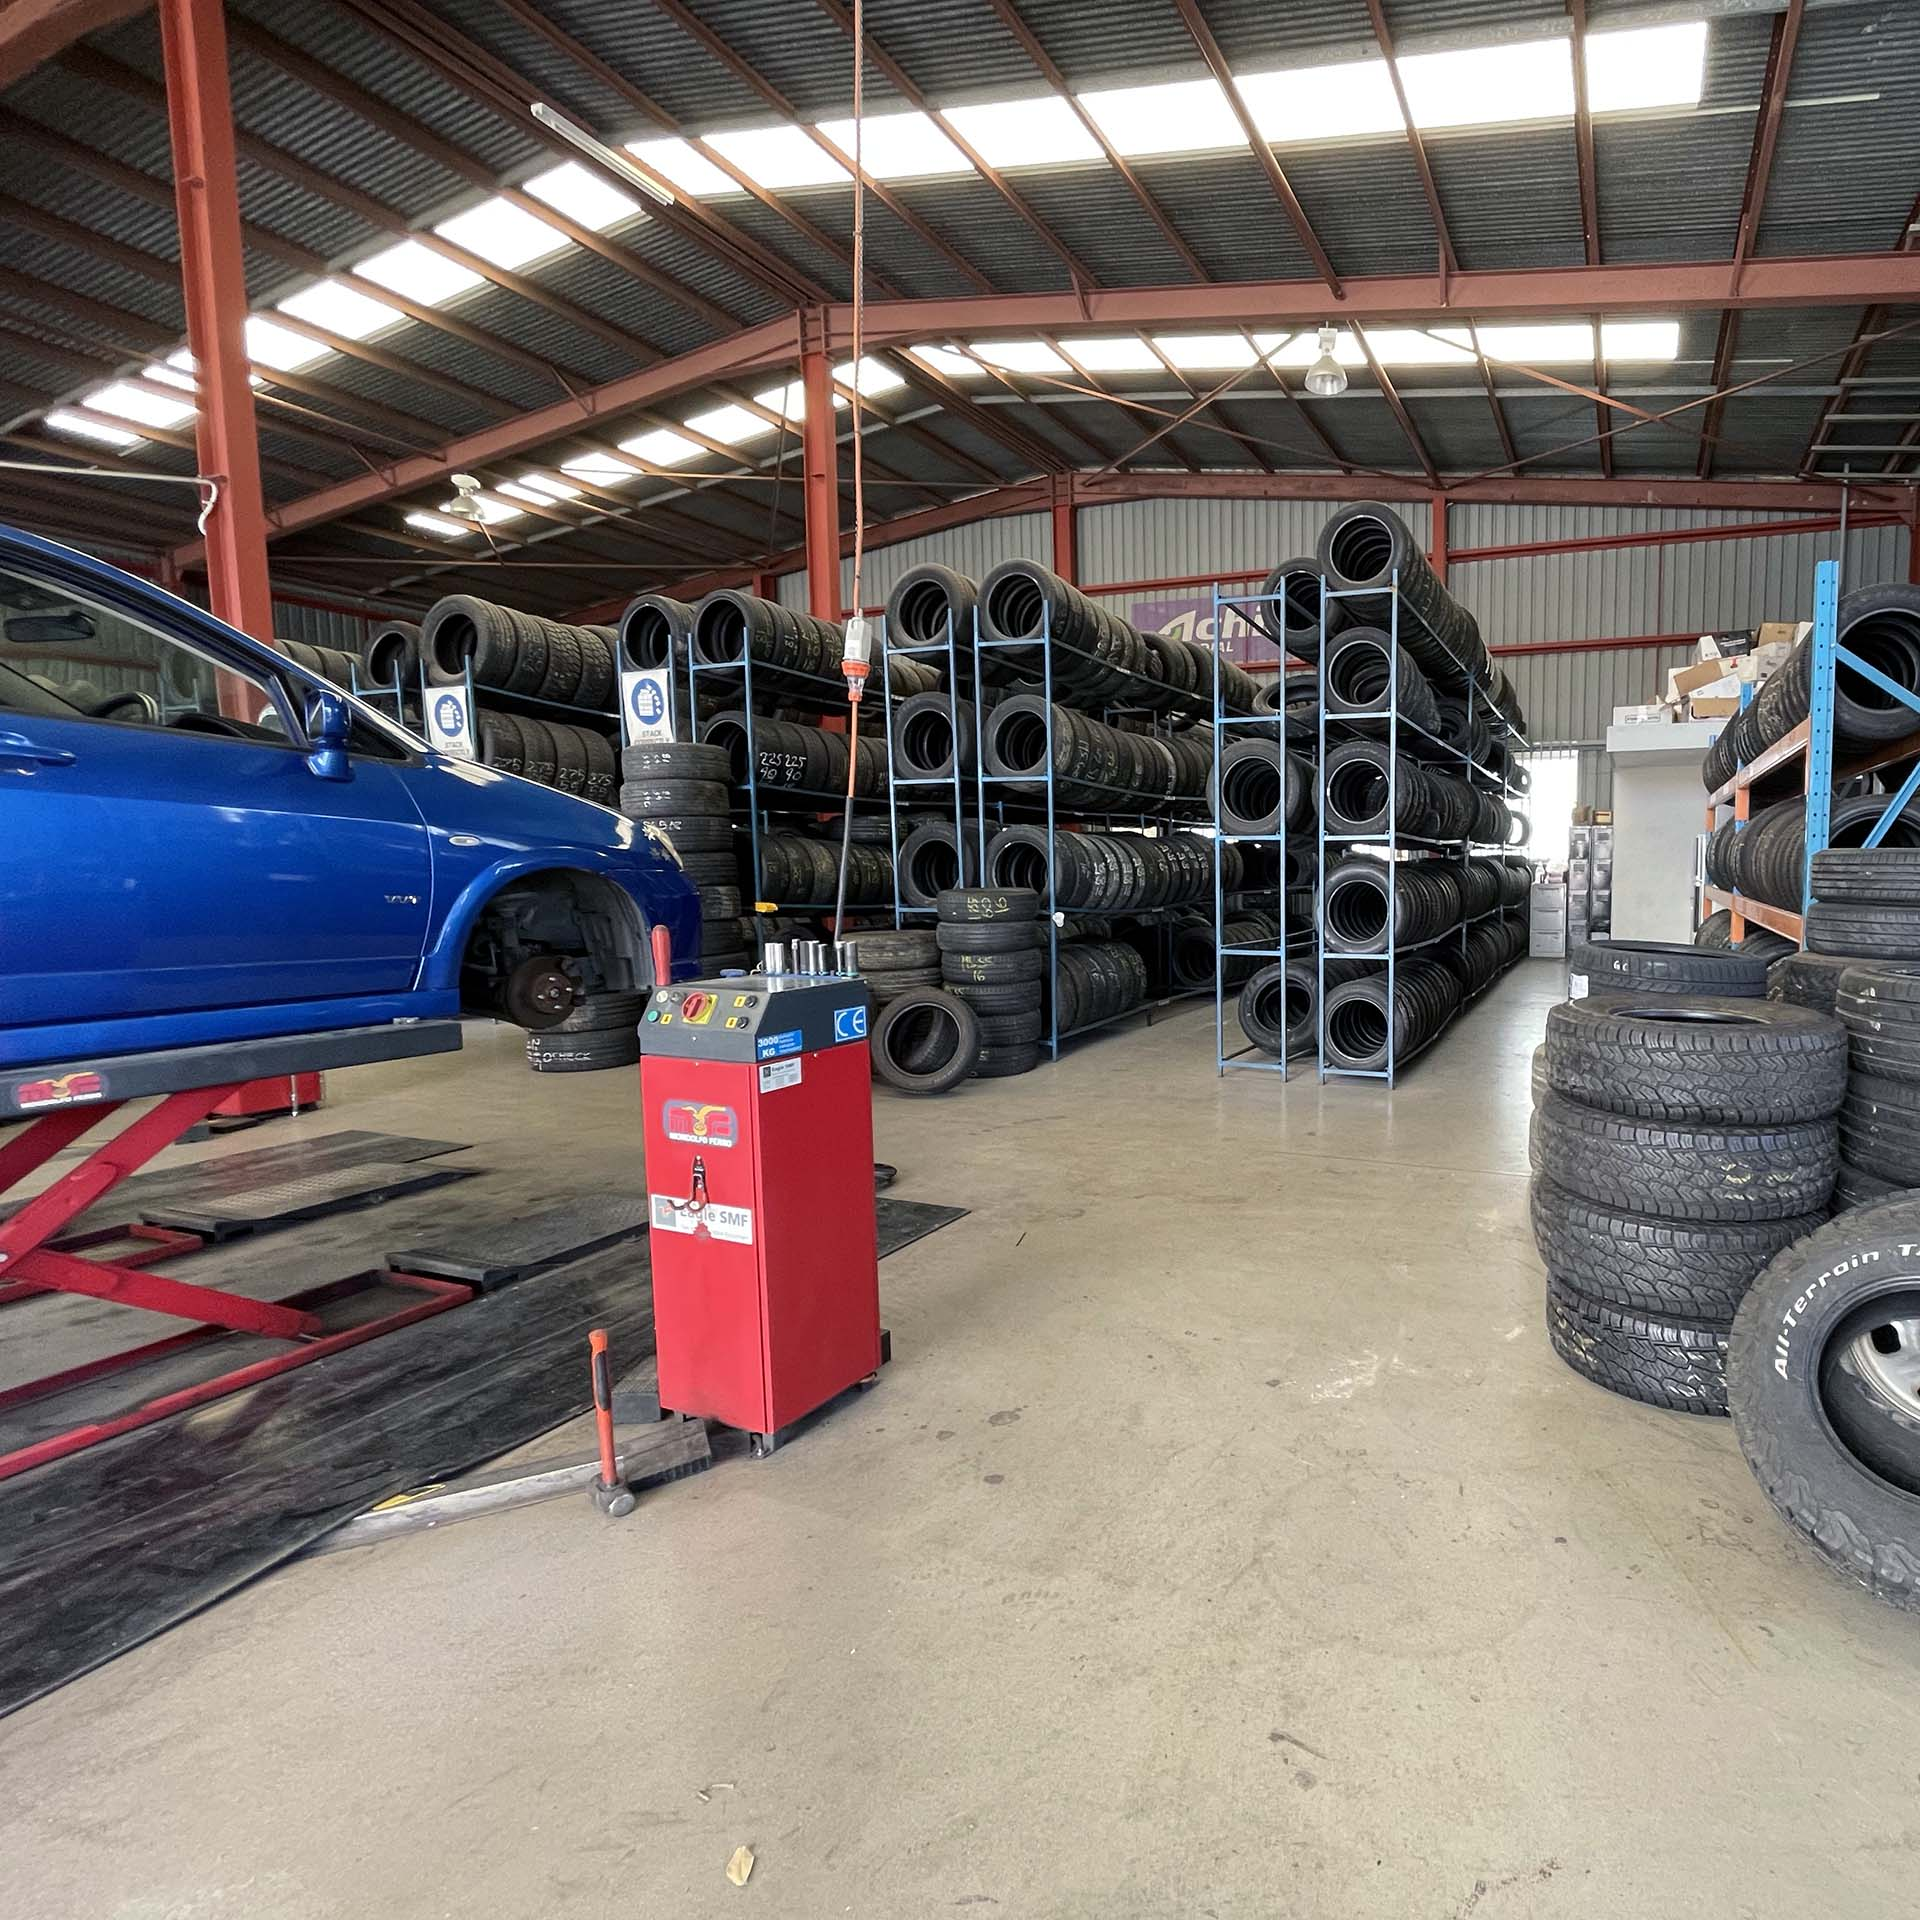 Interrior of the Branigans Southport tyre shop in the Gold Coast.